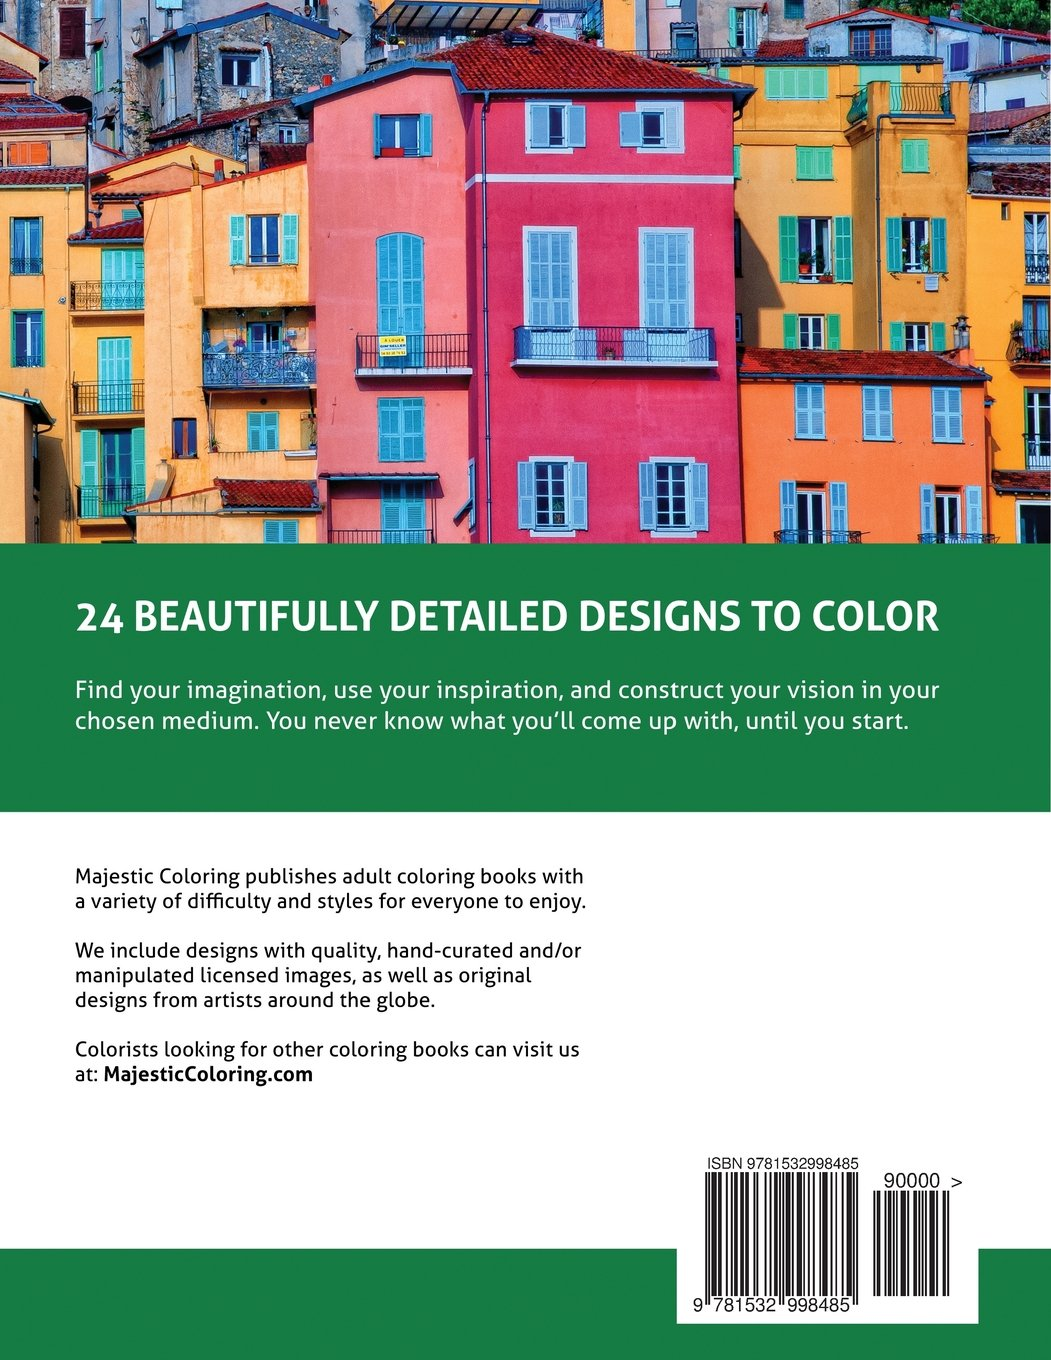 Coloring book real estate - Amazon Com Colorful Things Grayscale Photo Coloring Book For Adults 9781532998485 Majestic Coloring Books